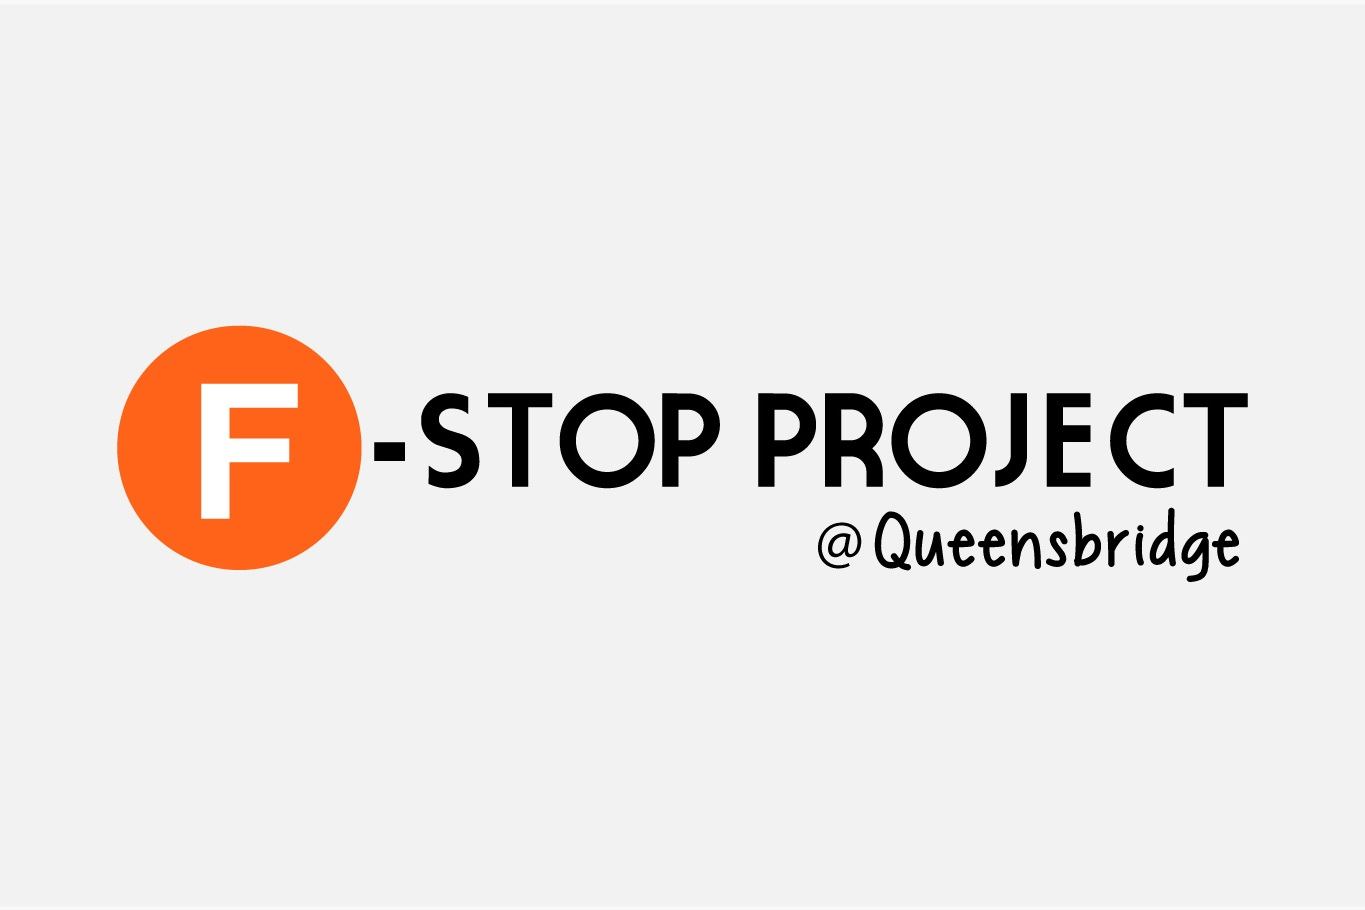 ABOUT THE F-STOP PROJECT